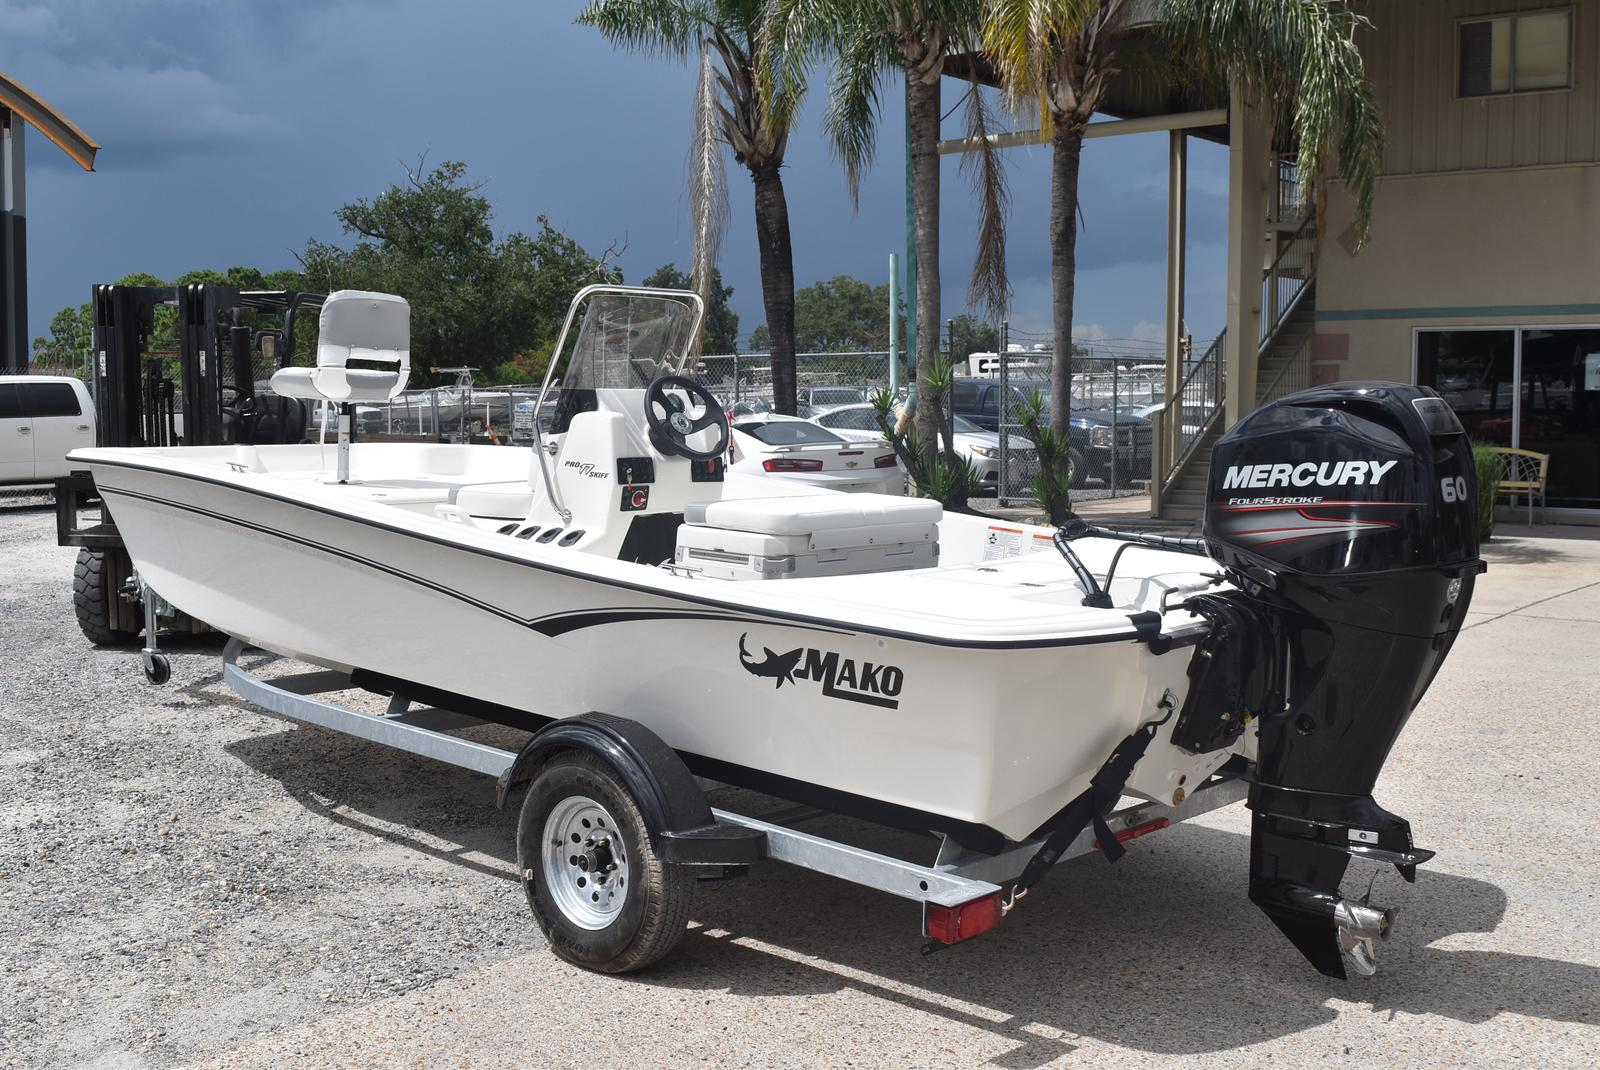 2020 Mako boat for sale, model of the boat is Pro Skiff 17, 75 ELPT & Image # 212 of 702